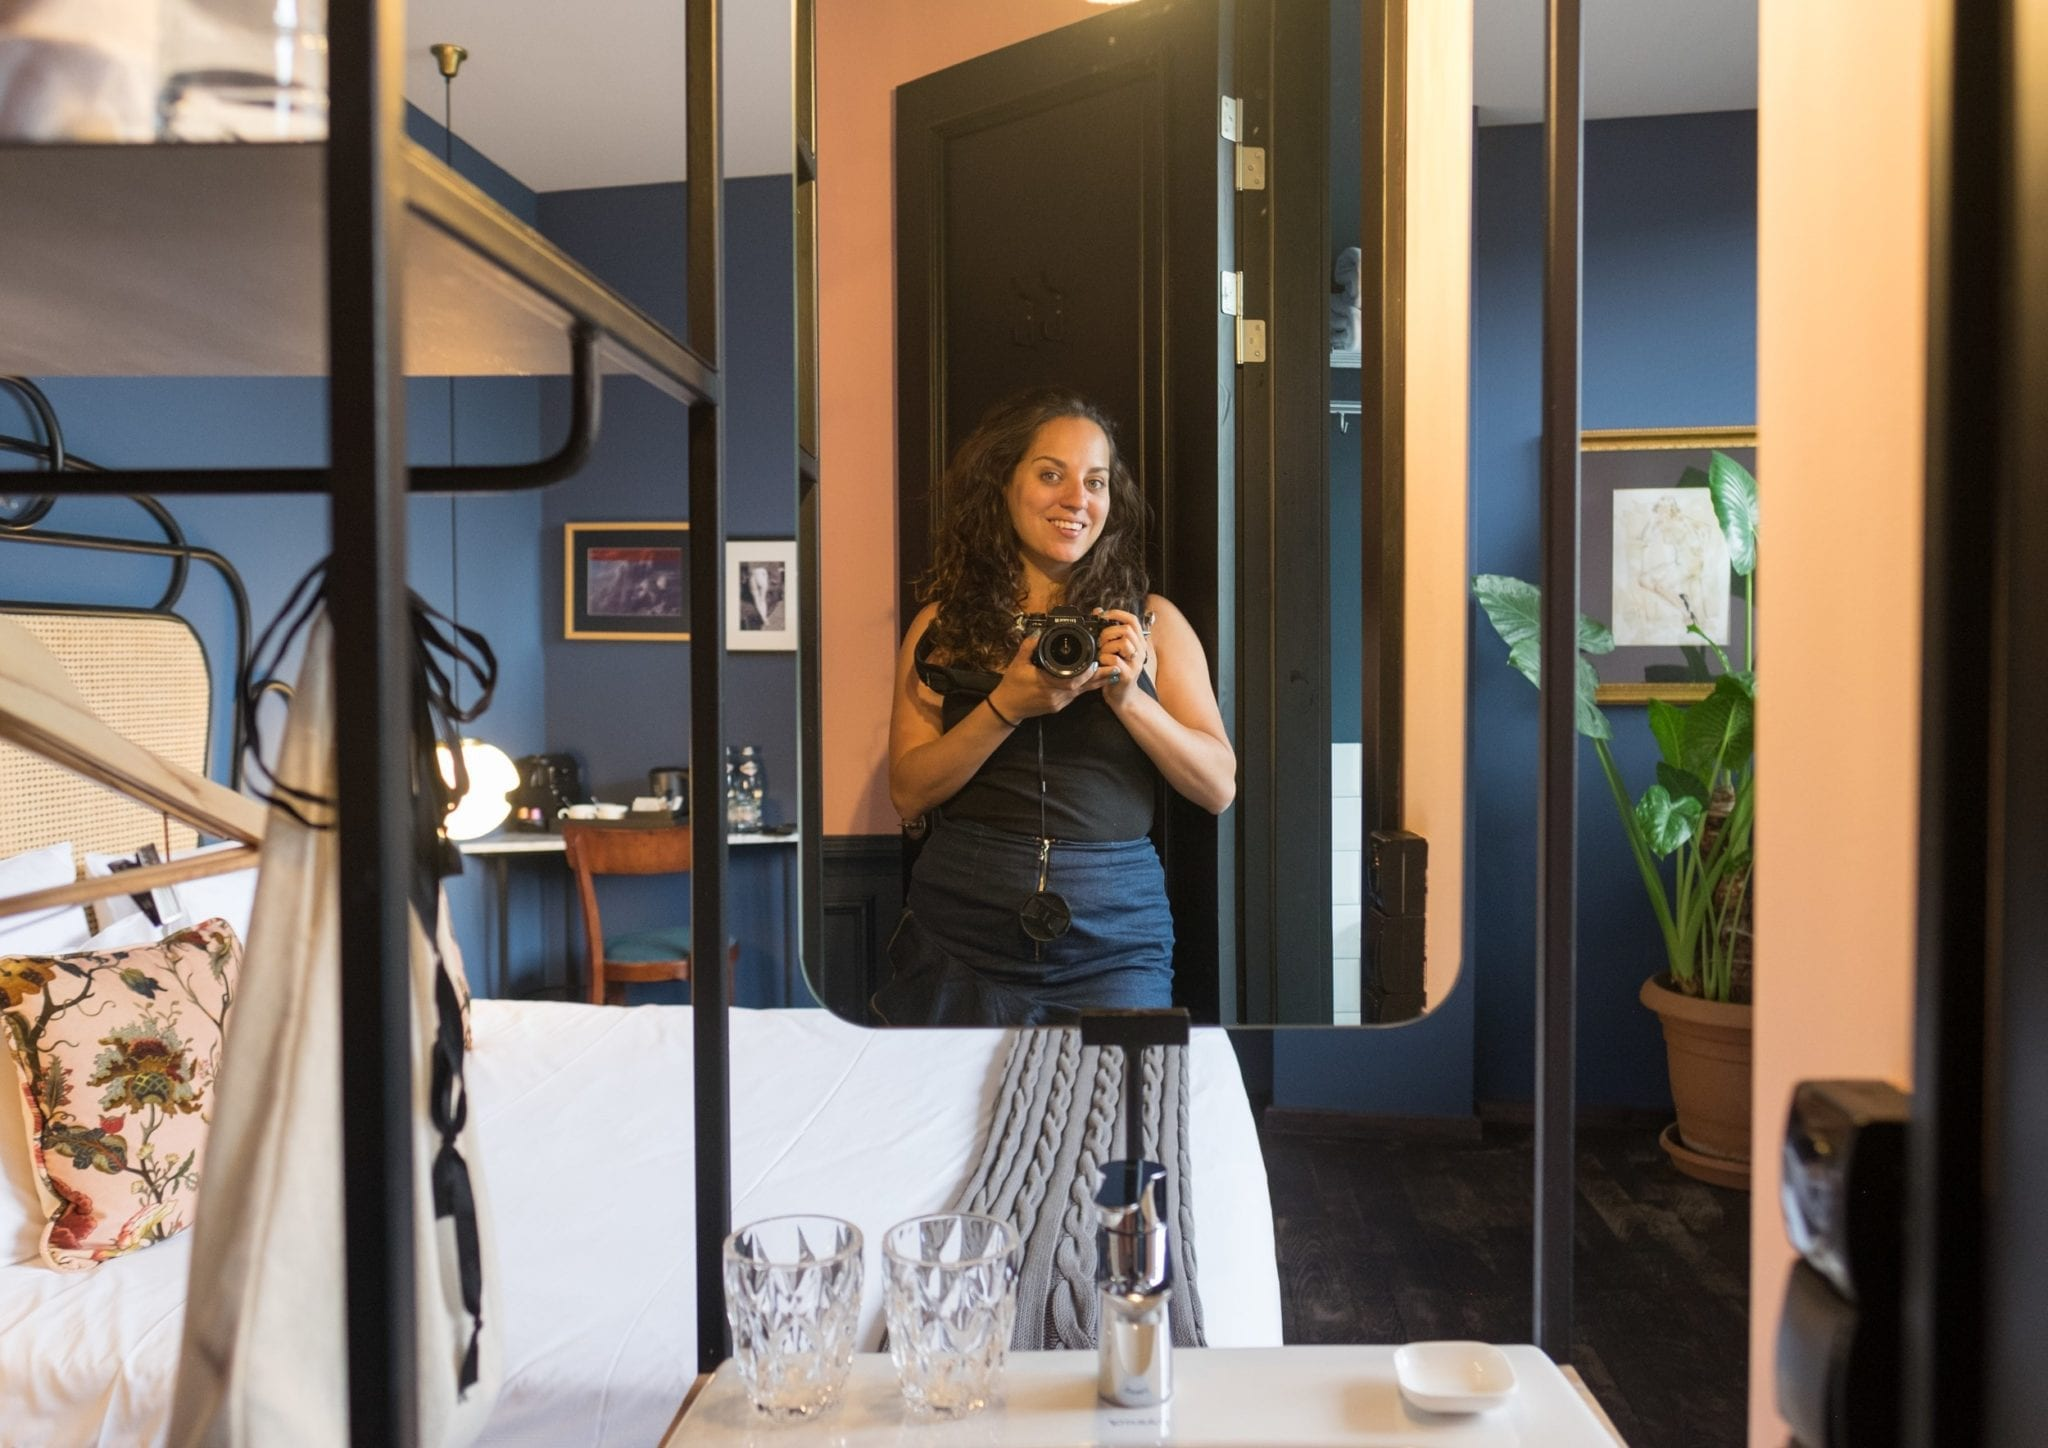 Kate takes a photo in a small mirror above a tiny modern sink; in the background you can see a modern hotel room painted dark blue.